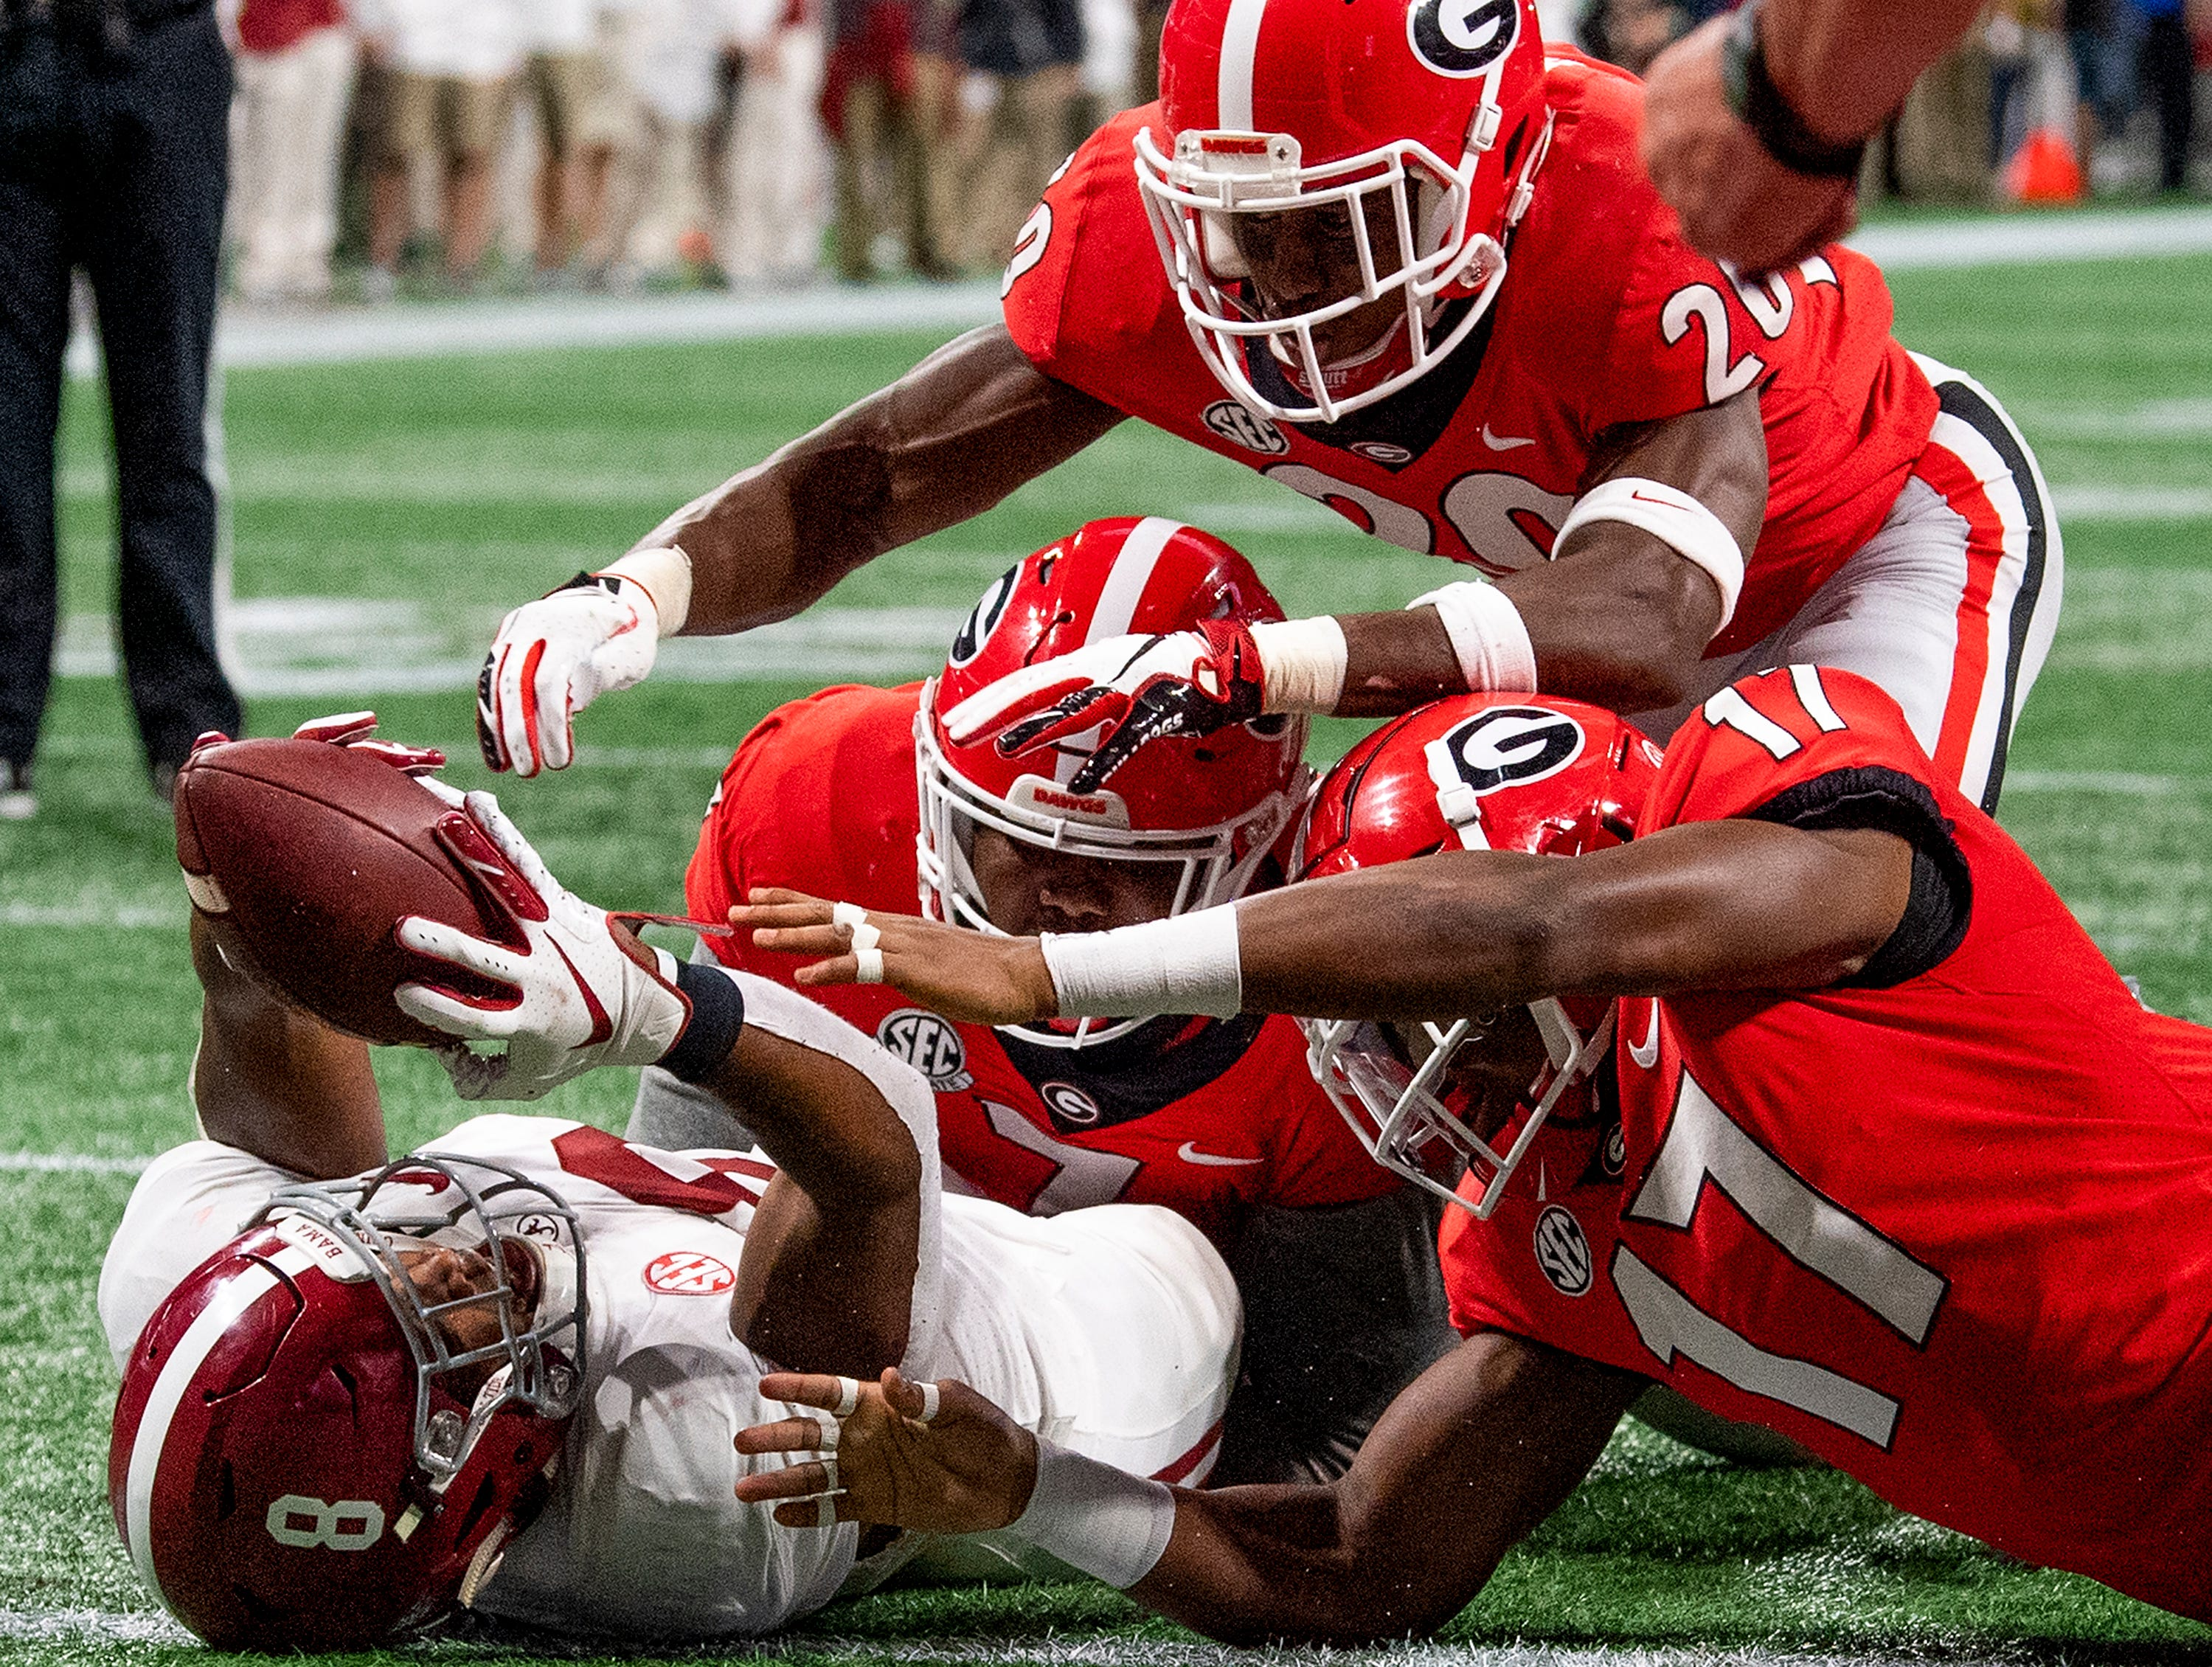 Alabama running back Josh Jacobs (8) recovers an Alabama fumble in the end zone for a touchdown against Georgia during first half action of the SEC Championship Game at Mercedes Benz Stadium in Atlanta, Ga., on Saturday December 1, 2018.